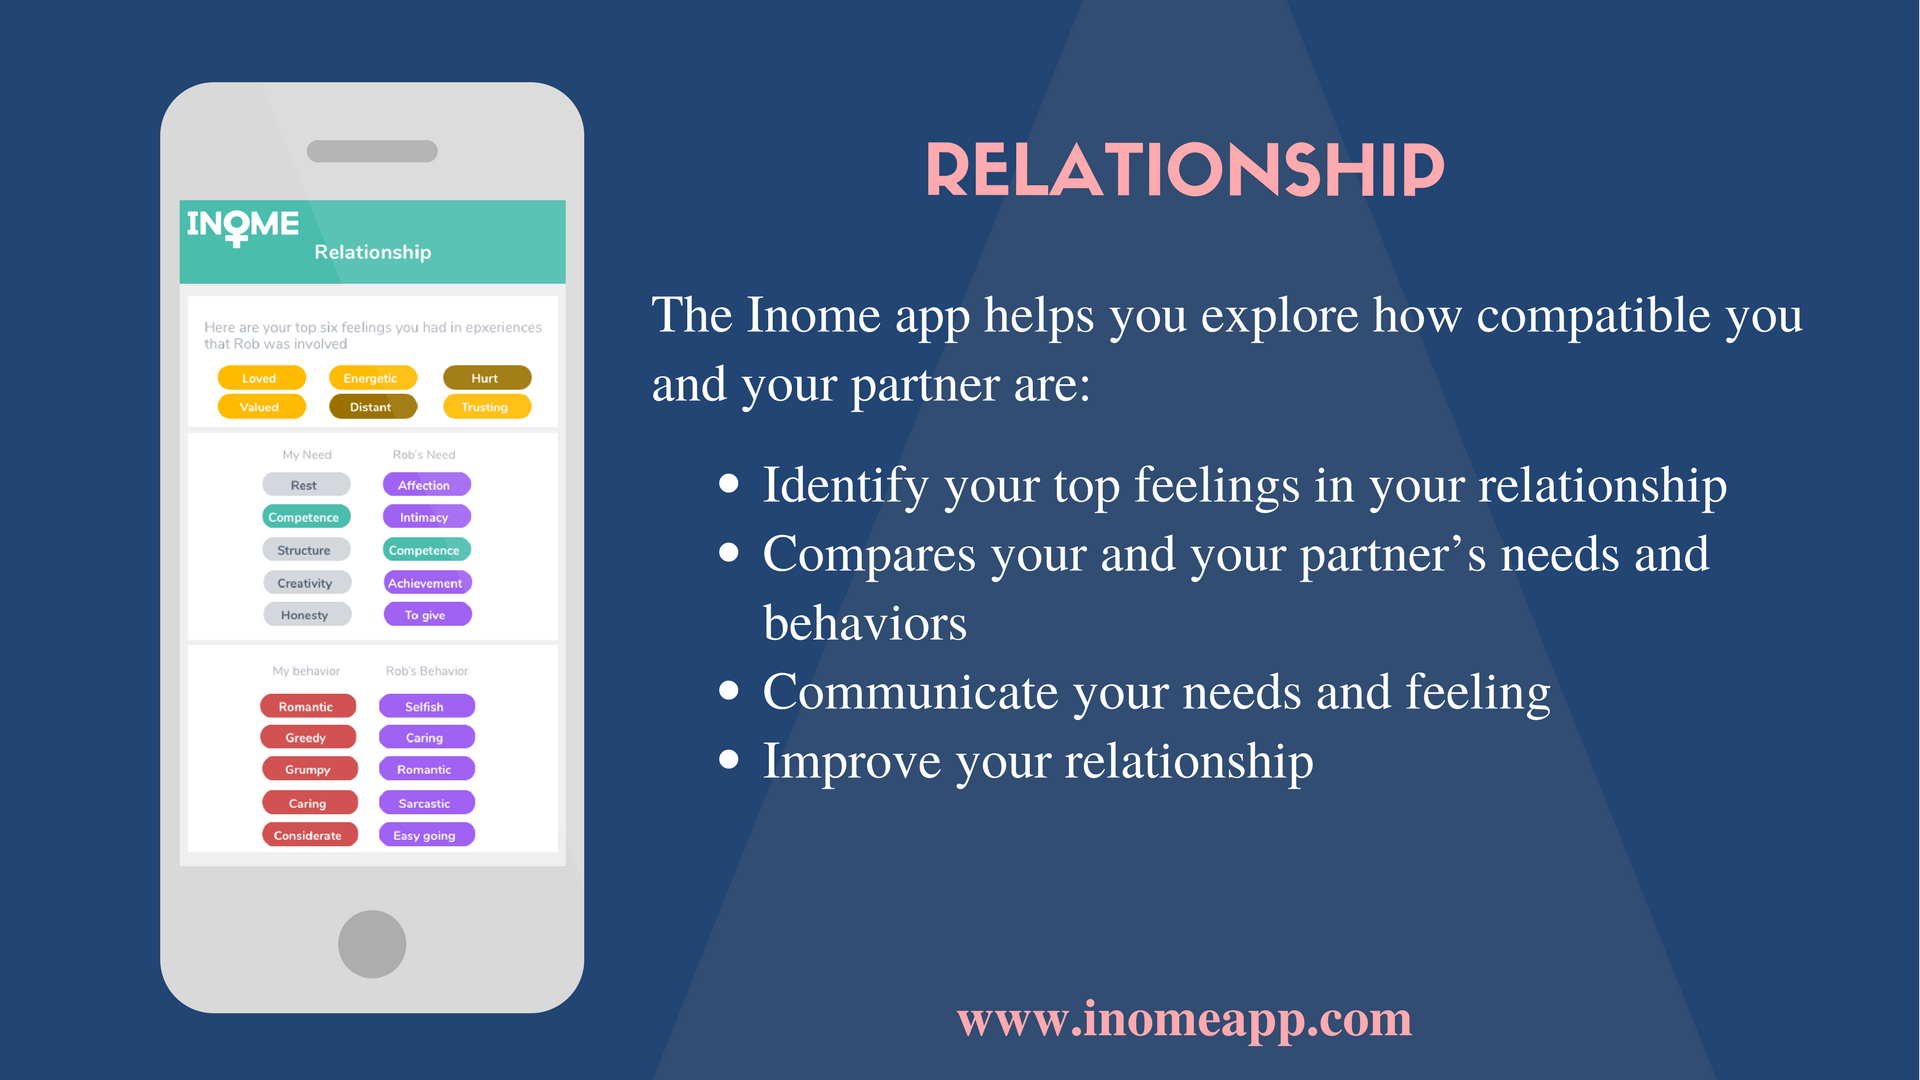 How compatible are you and your partner?